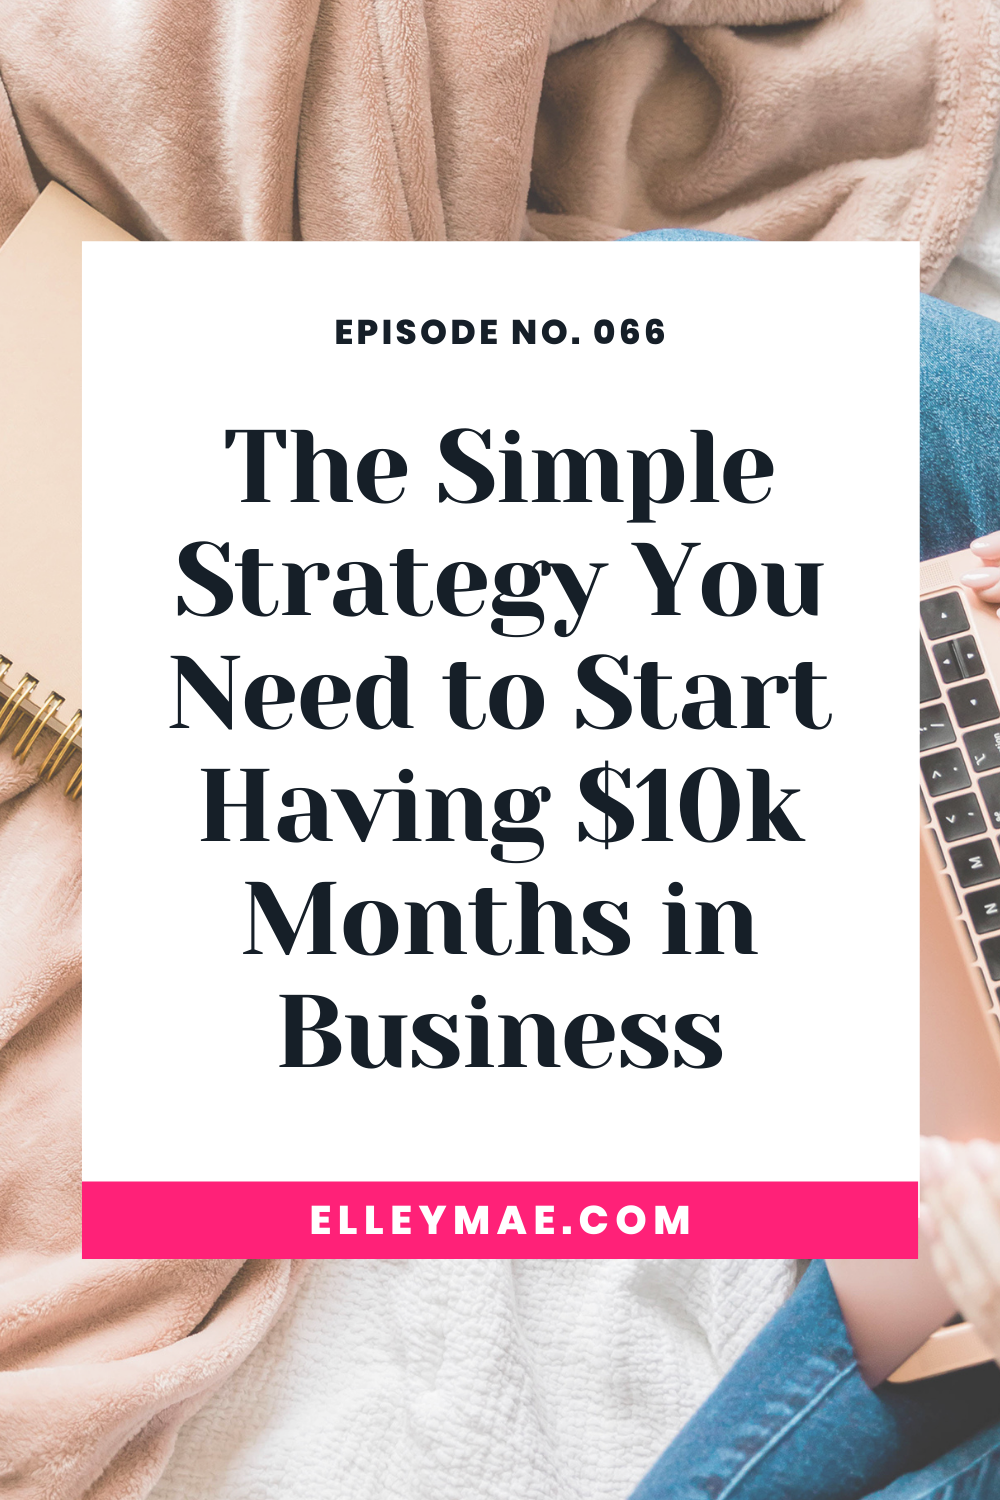 066. The Simplest Way to Start Having $10k Months in Your Business